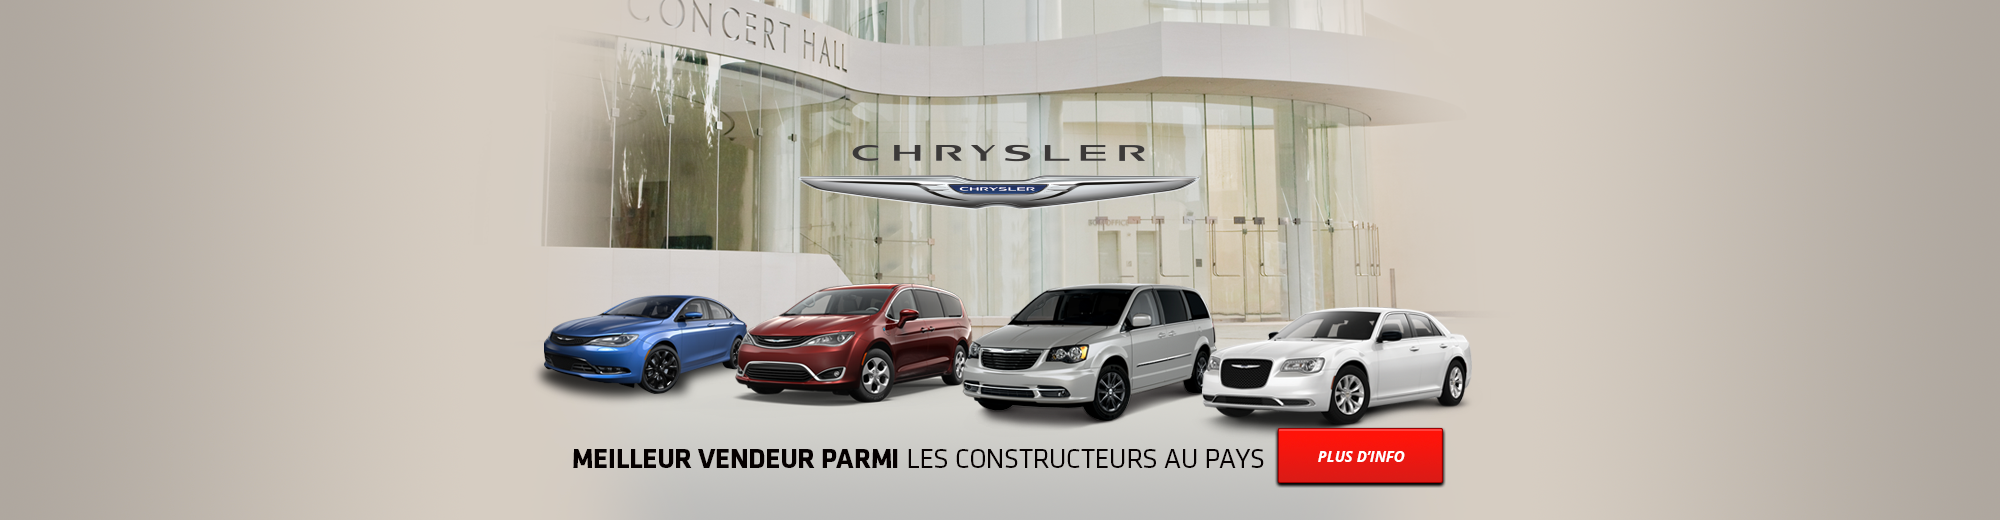 Canada #1 seling automaker